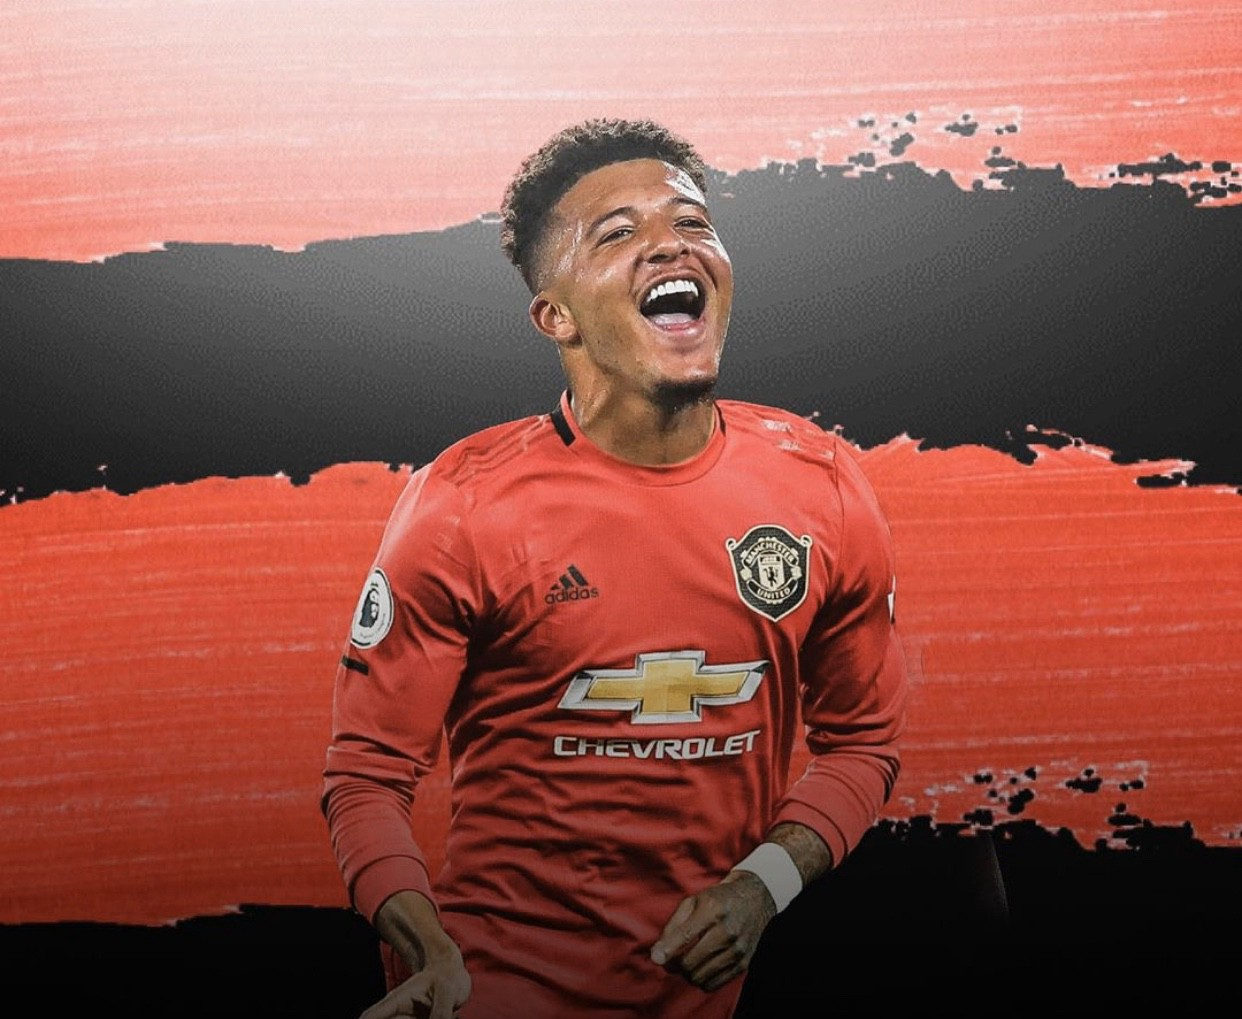 Why Jadon Sancho is the perfect fit for Manchester United | by Dev Mehta |  Medium